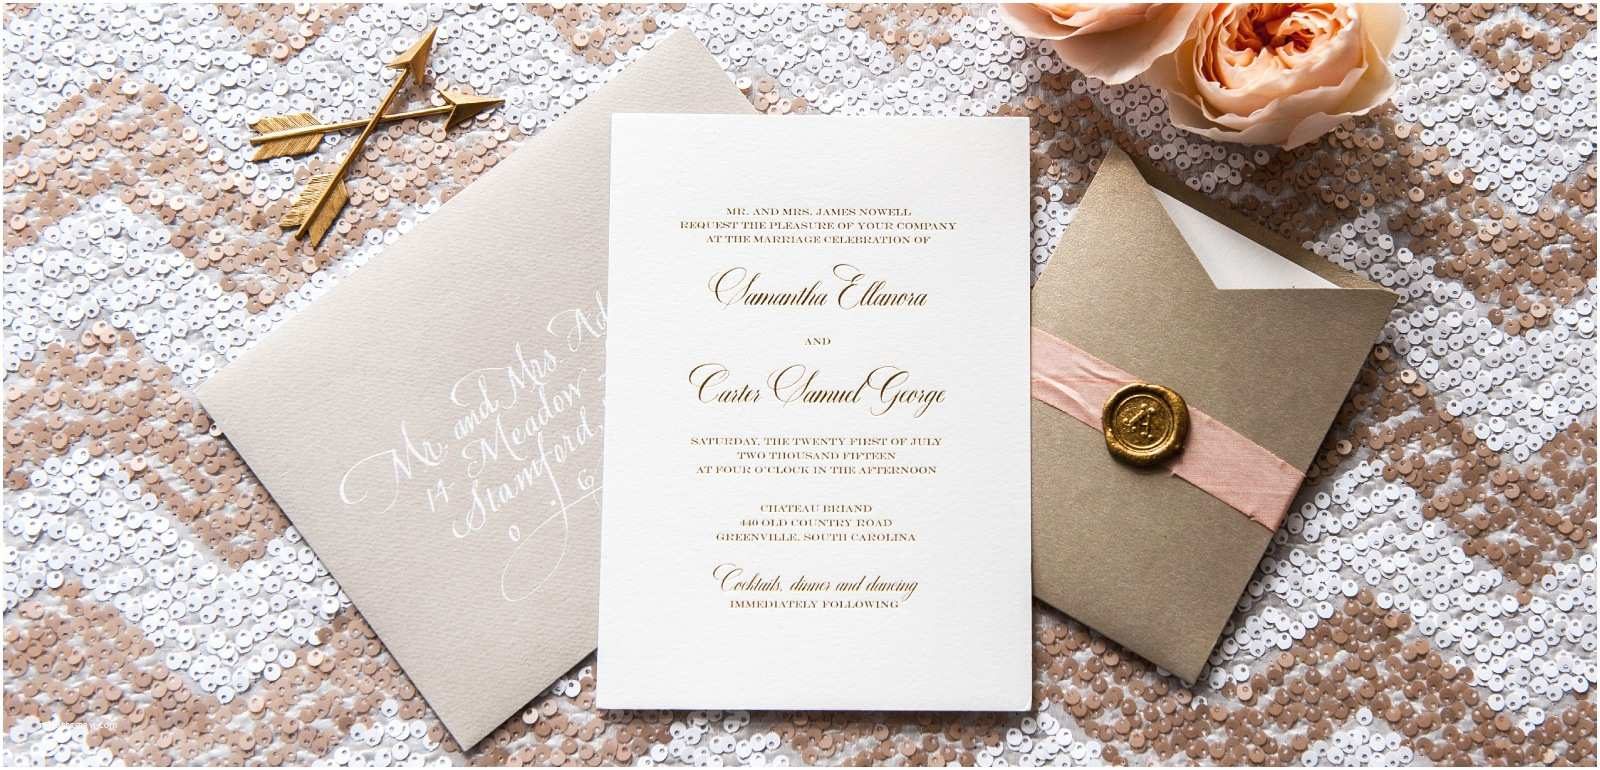 Foil Print Wedding Invitations Gold and Silver Foil Wedding Invitations